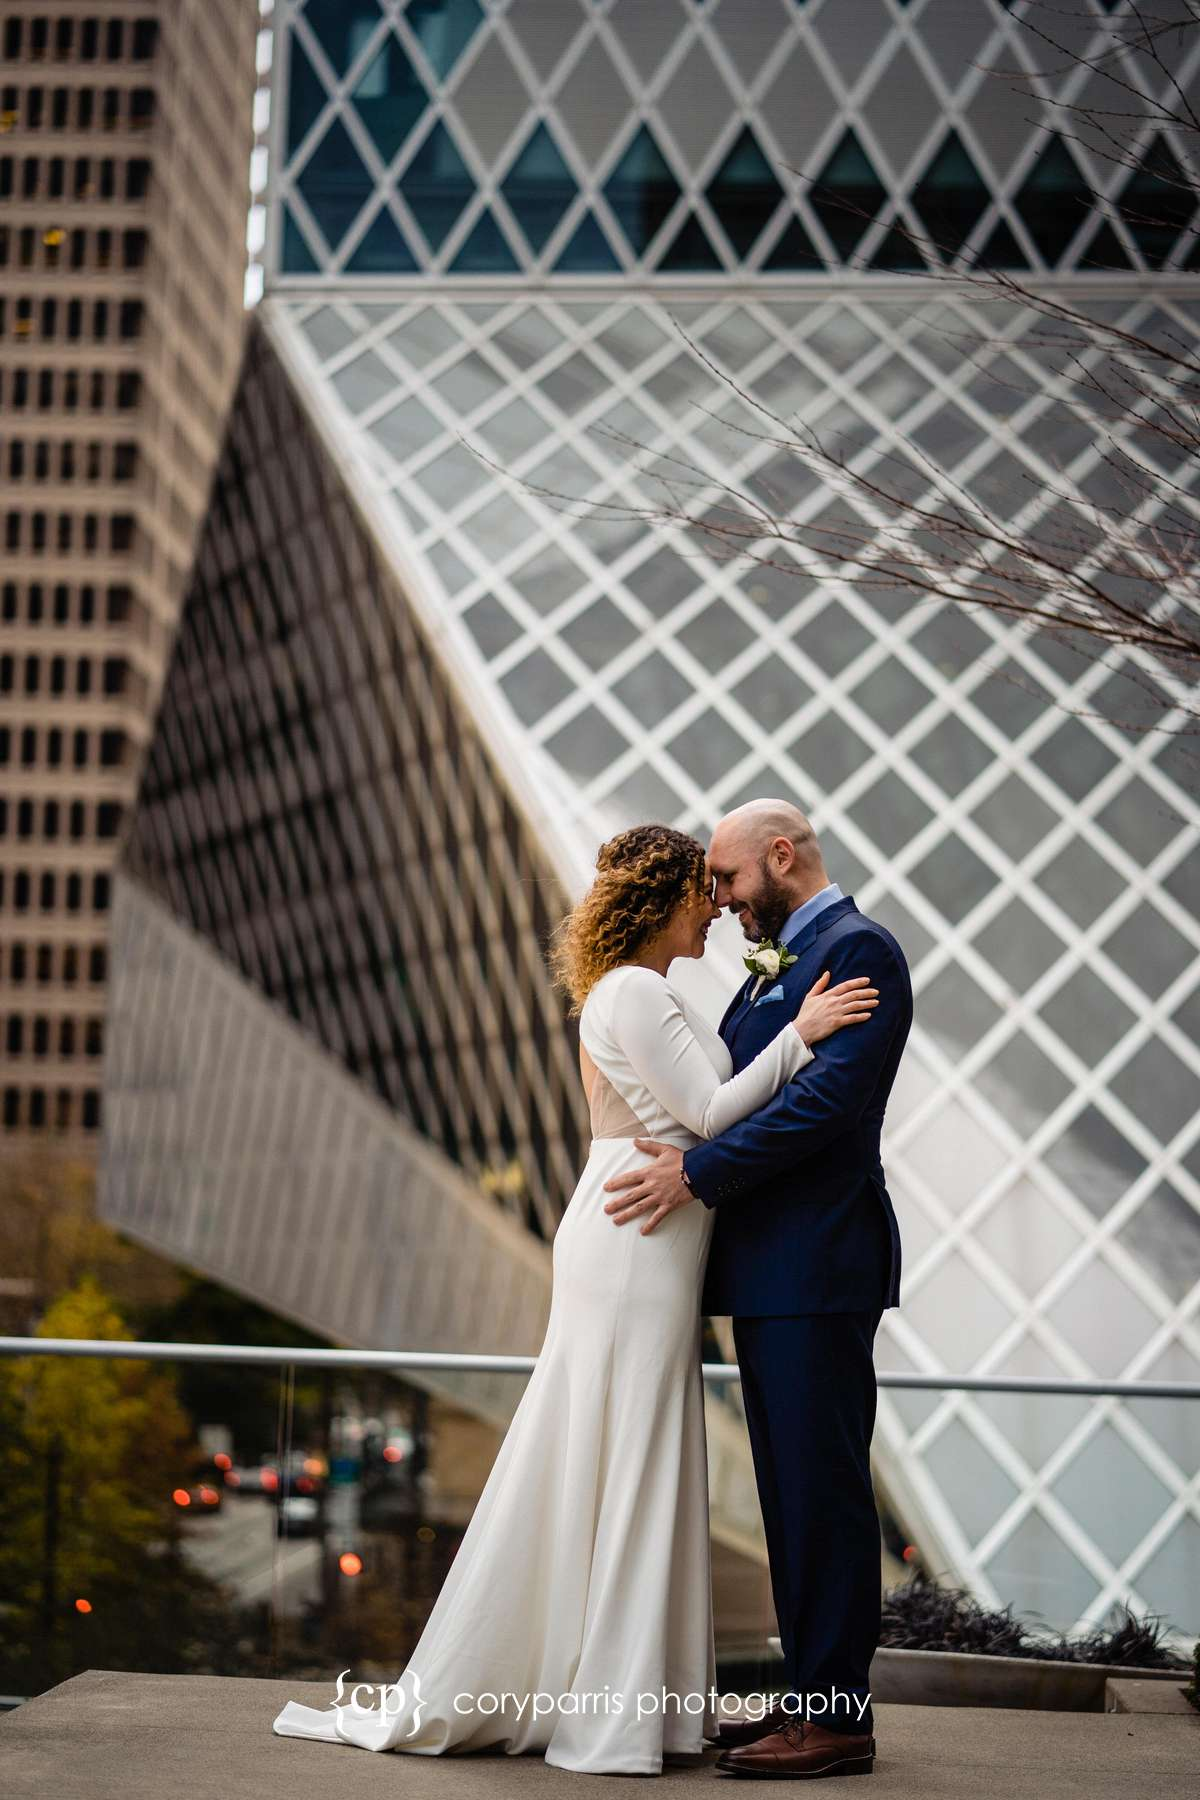 058-Seattle-Elope-Courthouse.jpg